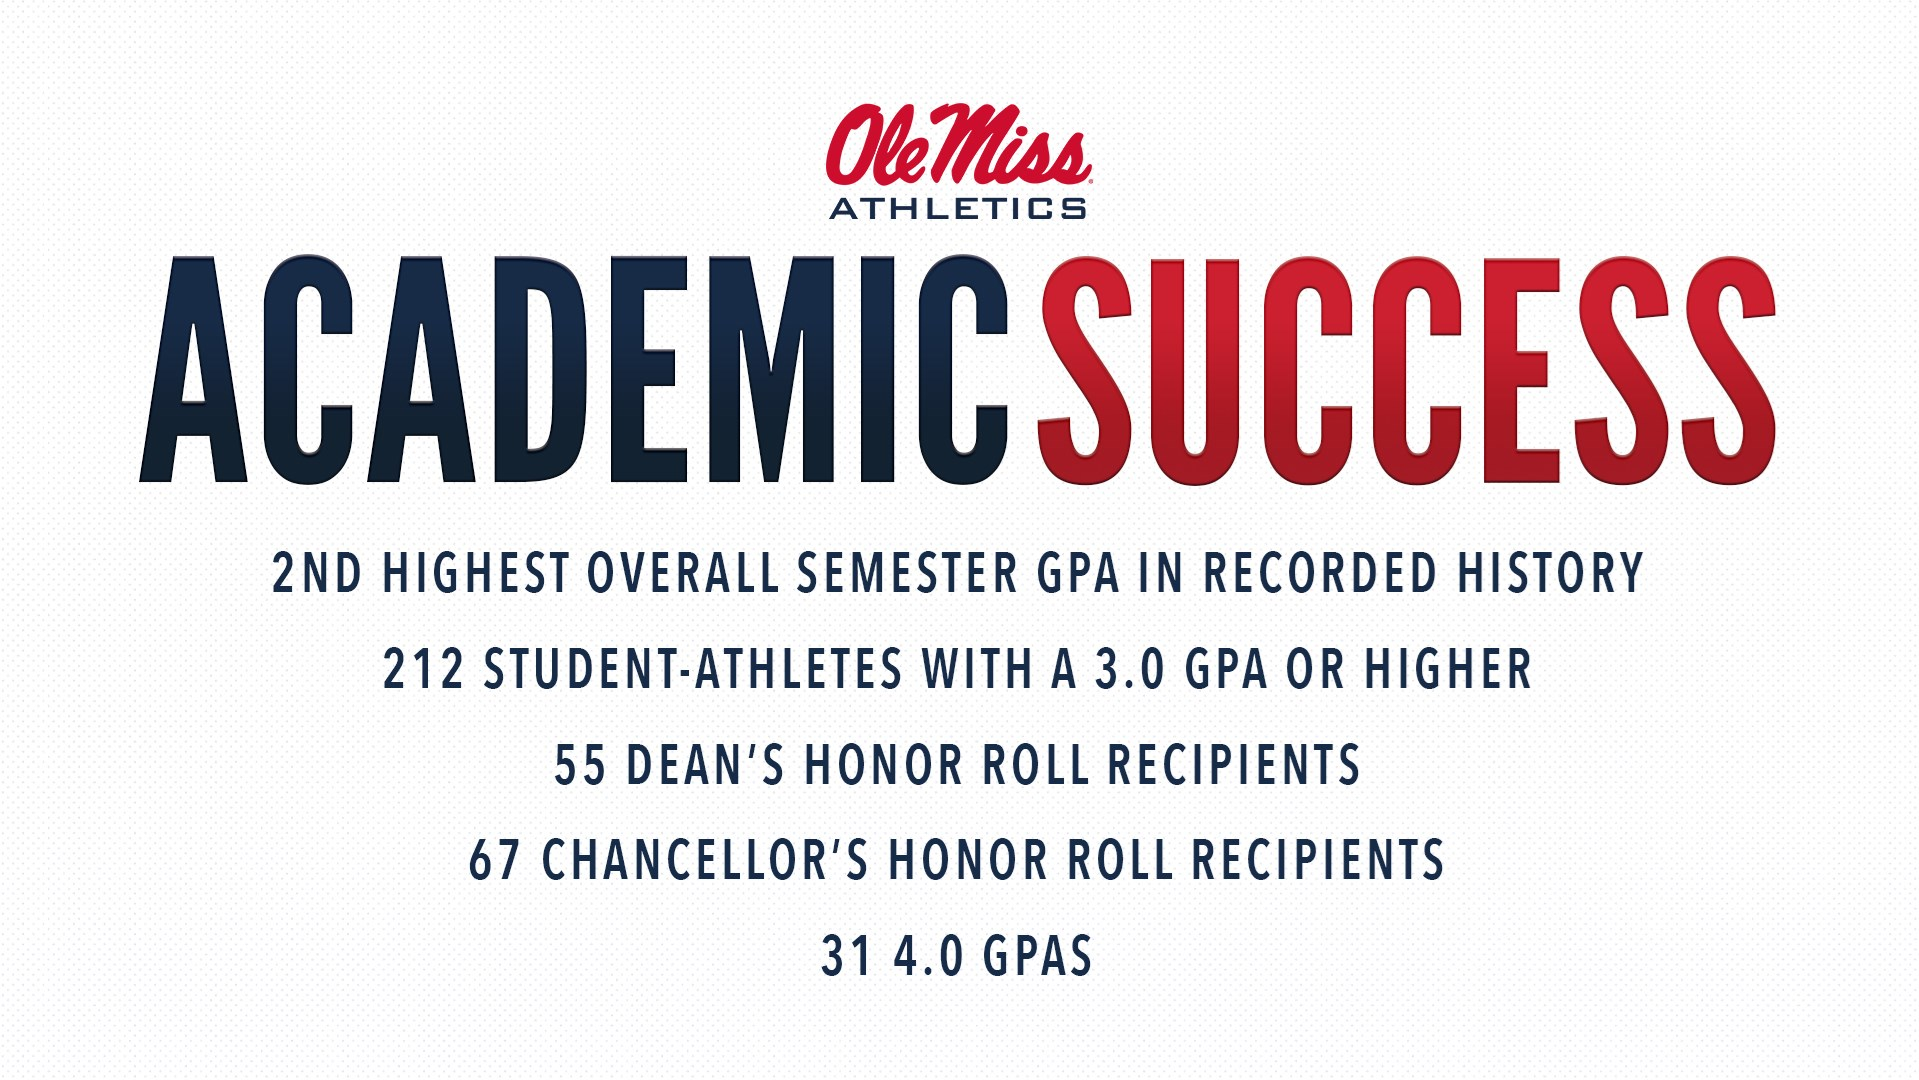 Ole Miss Academic Calendar.Rebels Conclude Another Successful Semester In The Classroom Ole